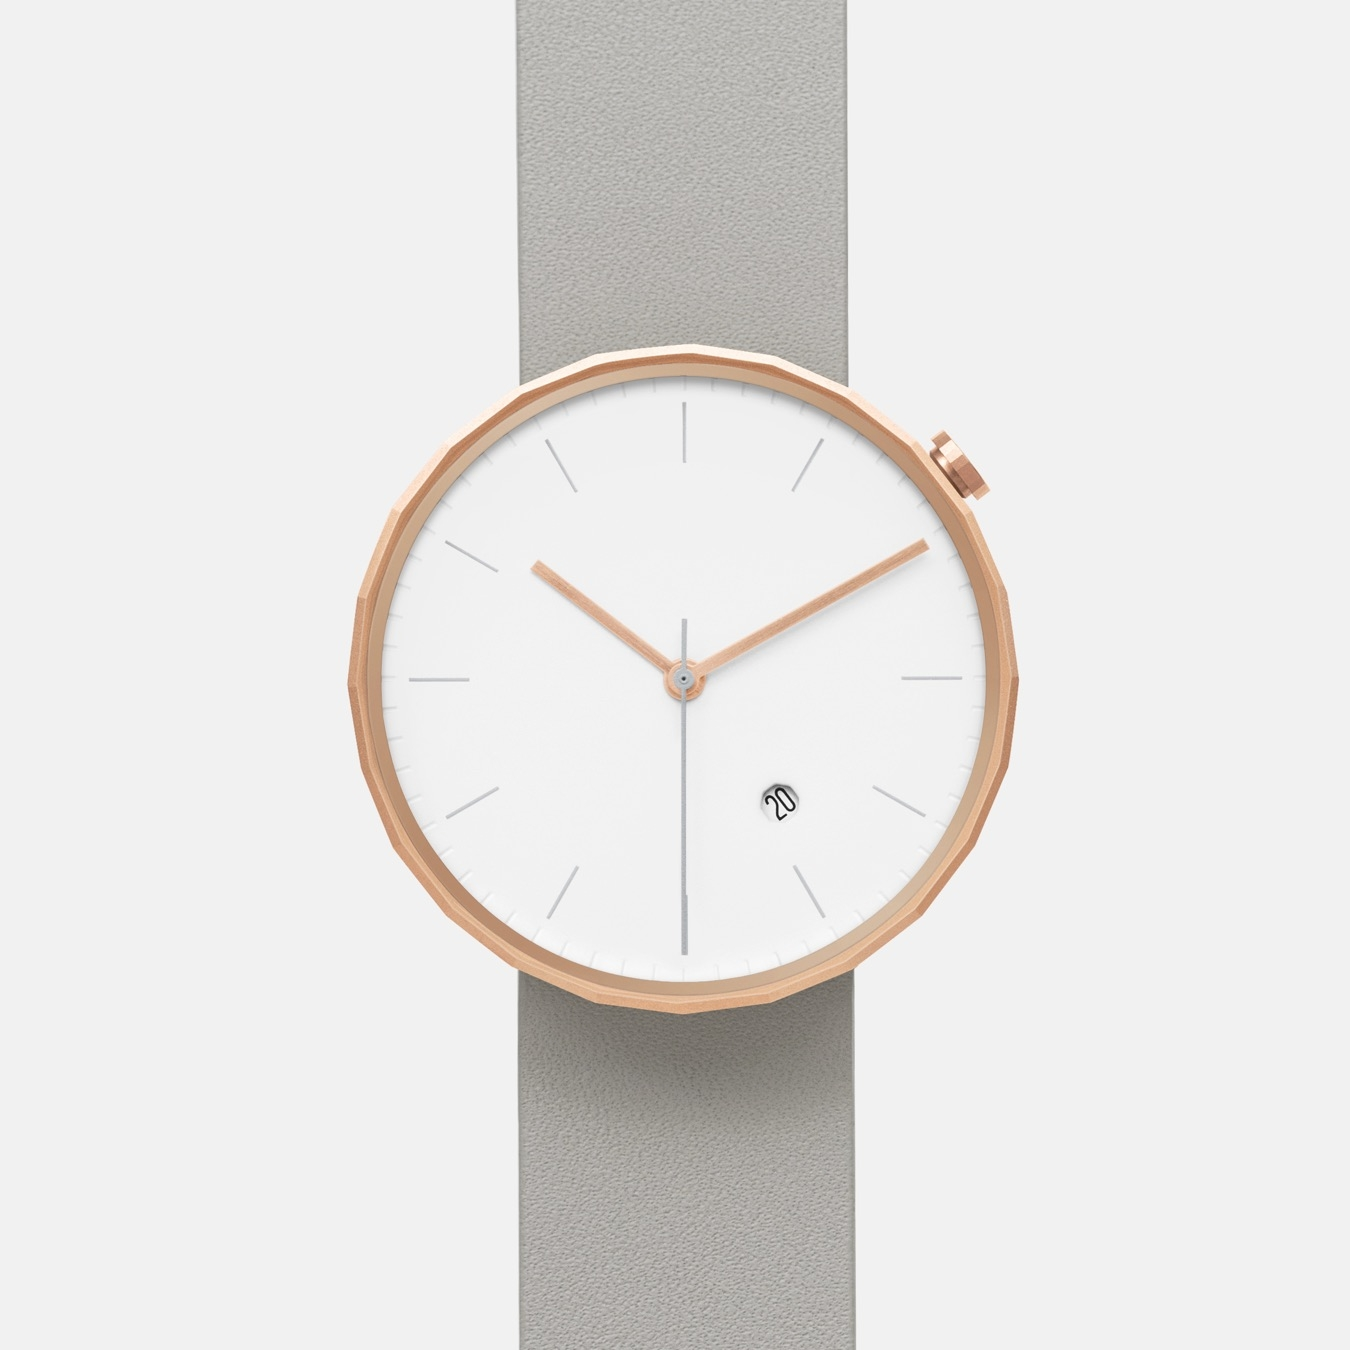 Polygon Watch 02 in Rose Gold with Grey Strap